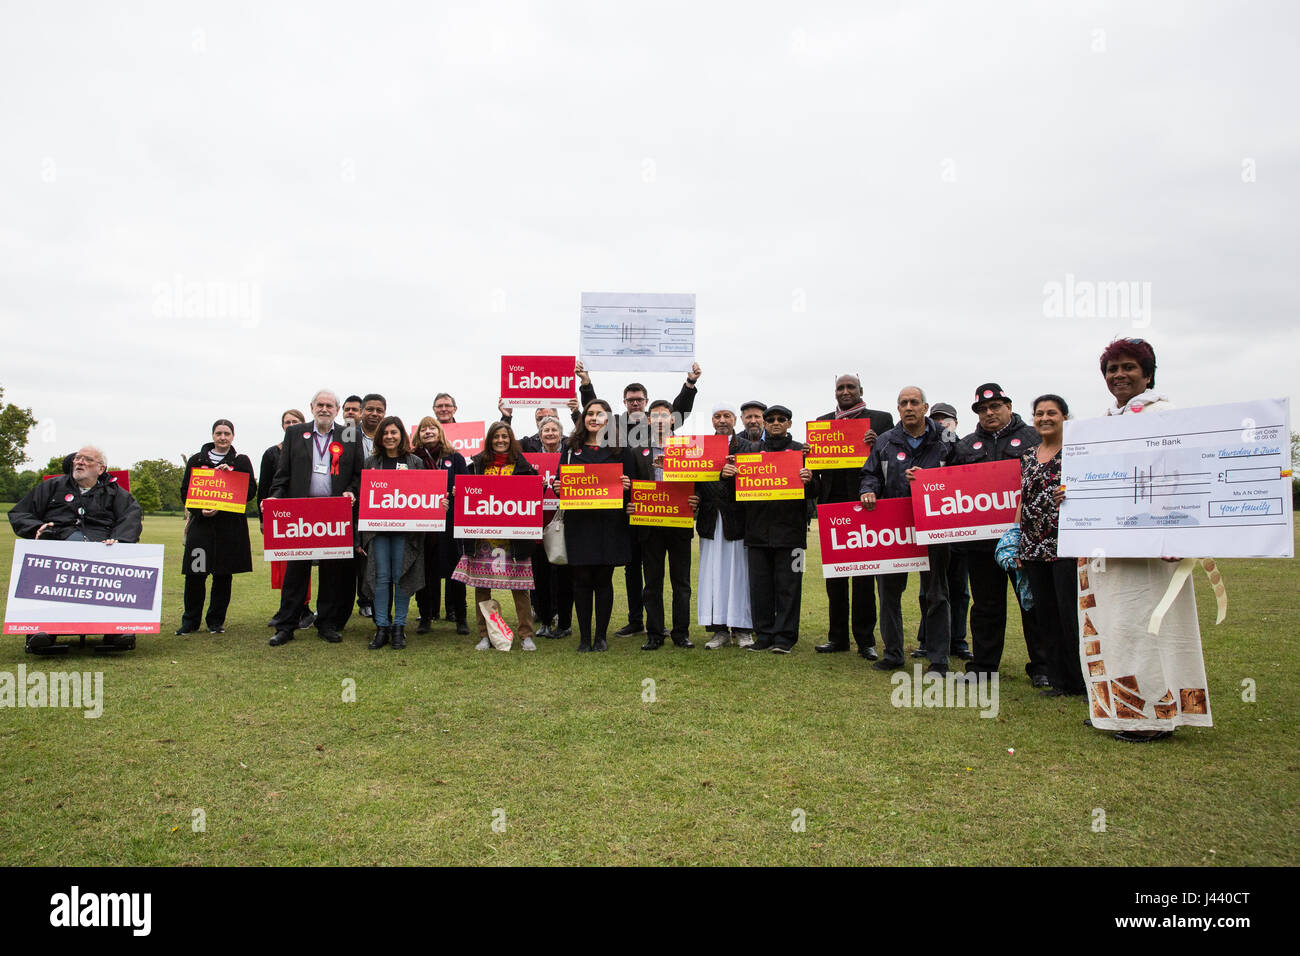 London, UK. 9th May, 2017. Sadiq Khan, Mayor of London, campaigns in South Harrow with Gareth Thomas, Labour and - Stock Image